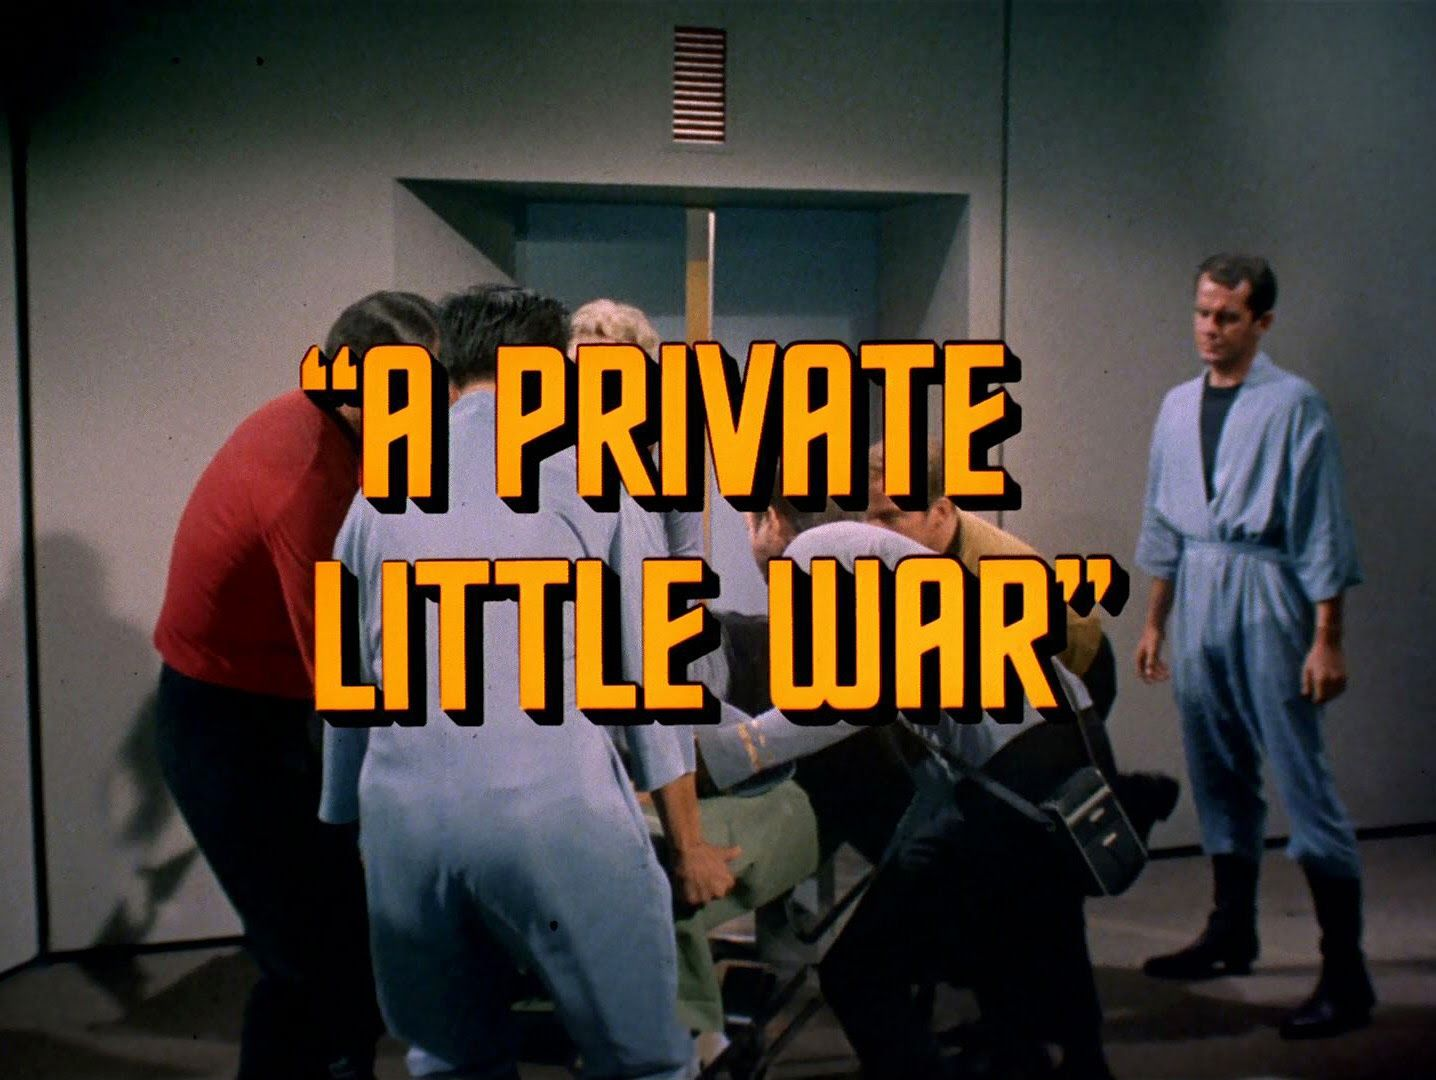 private little war title